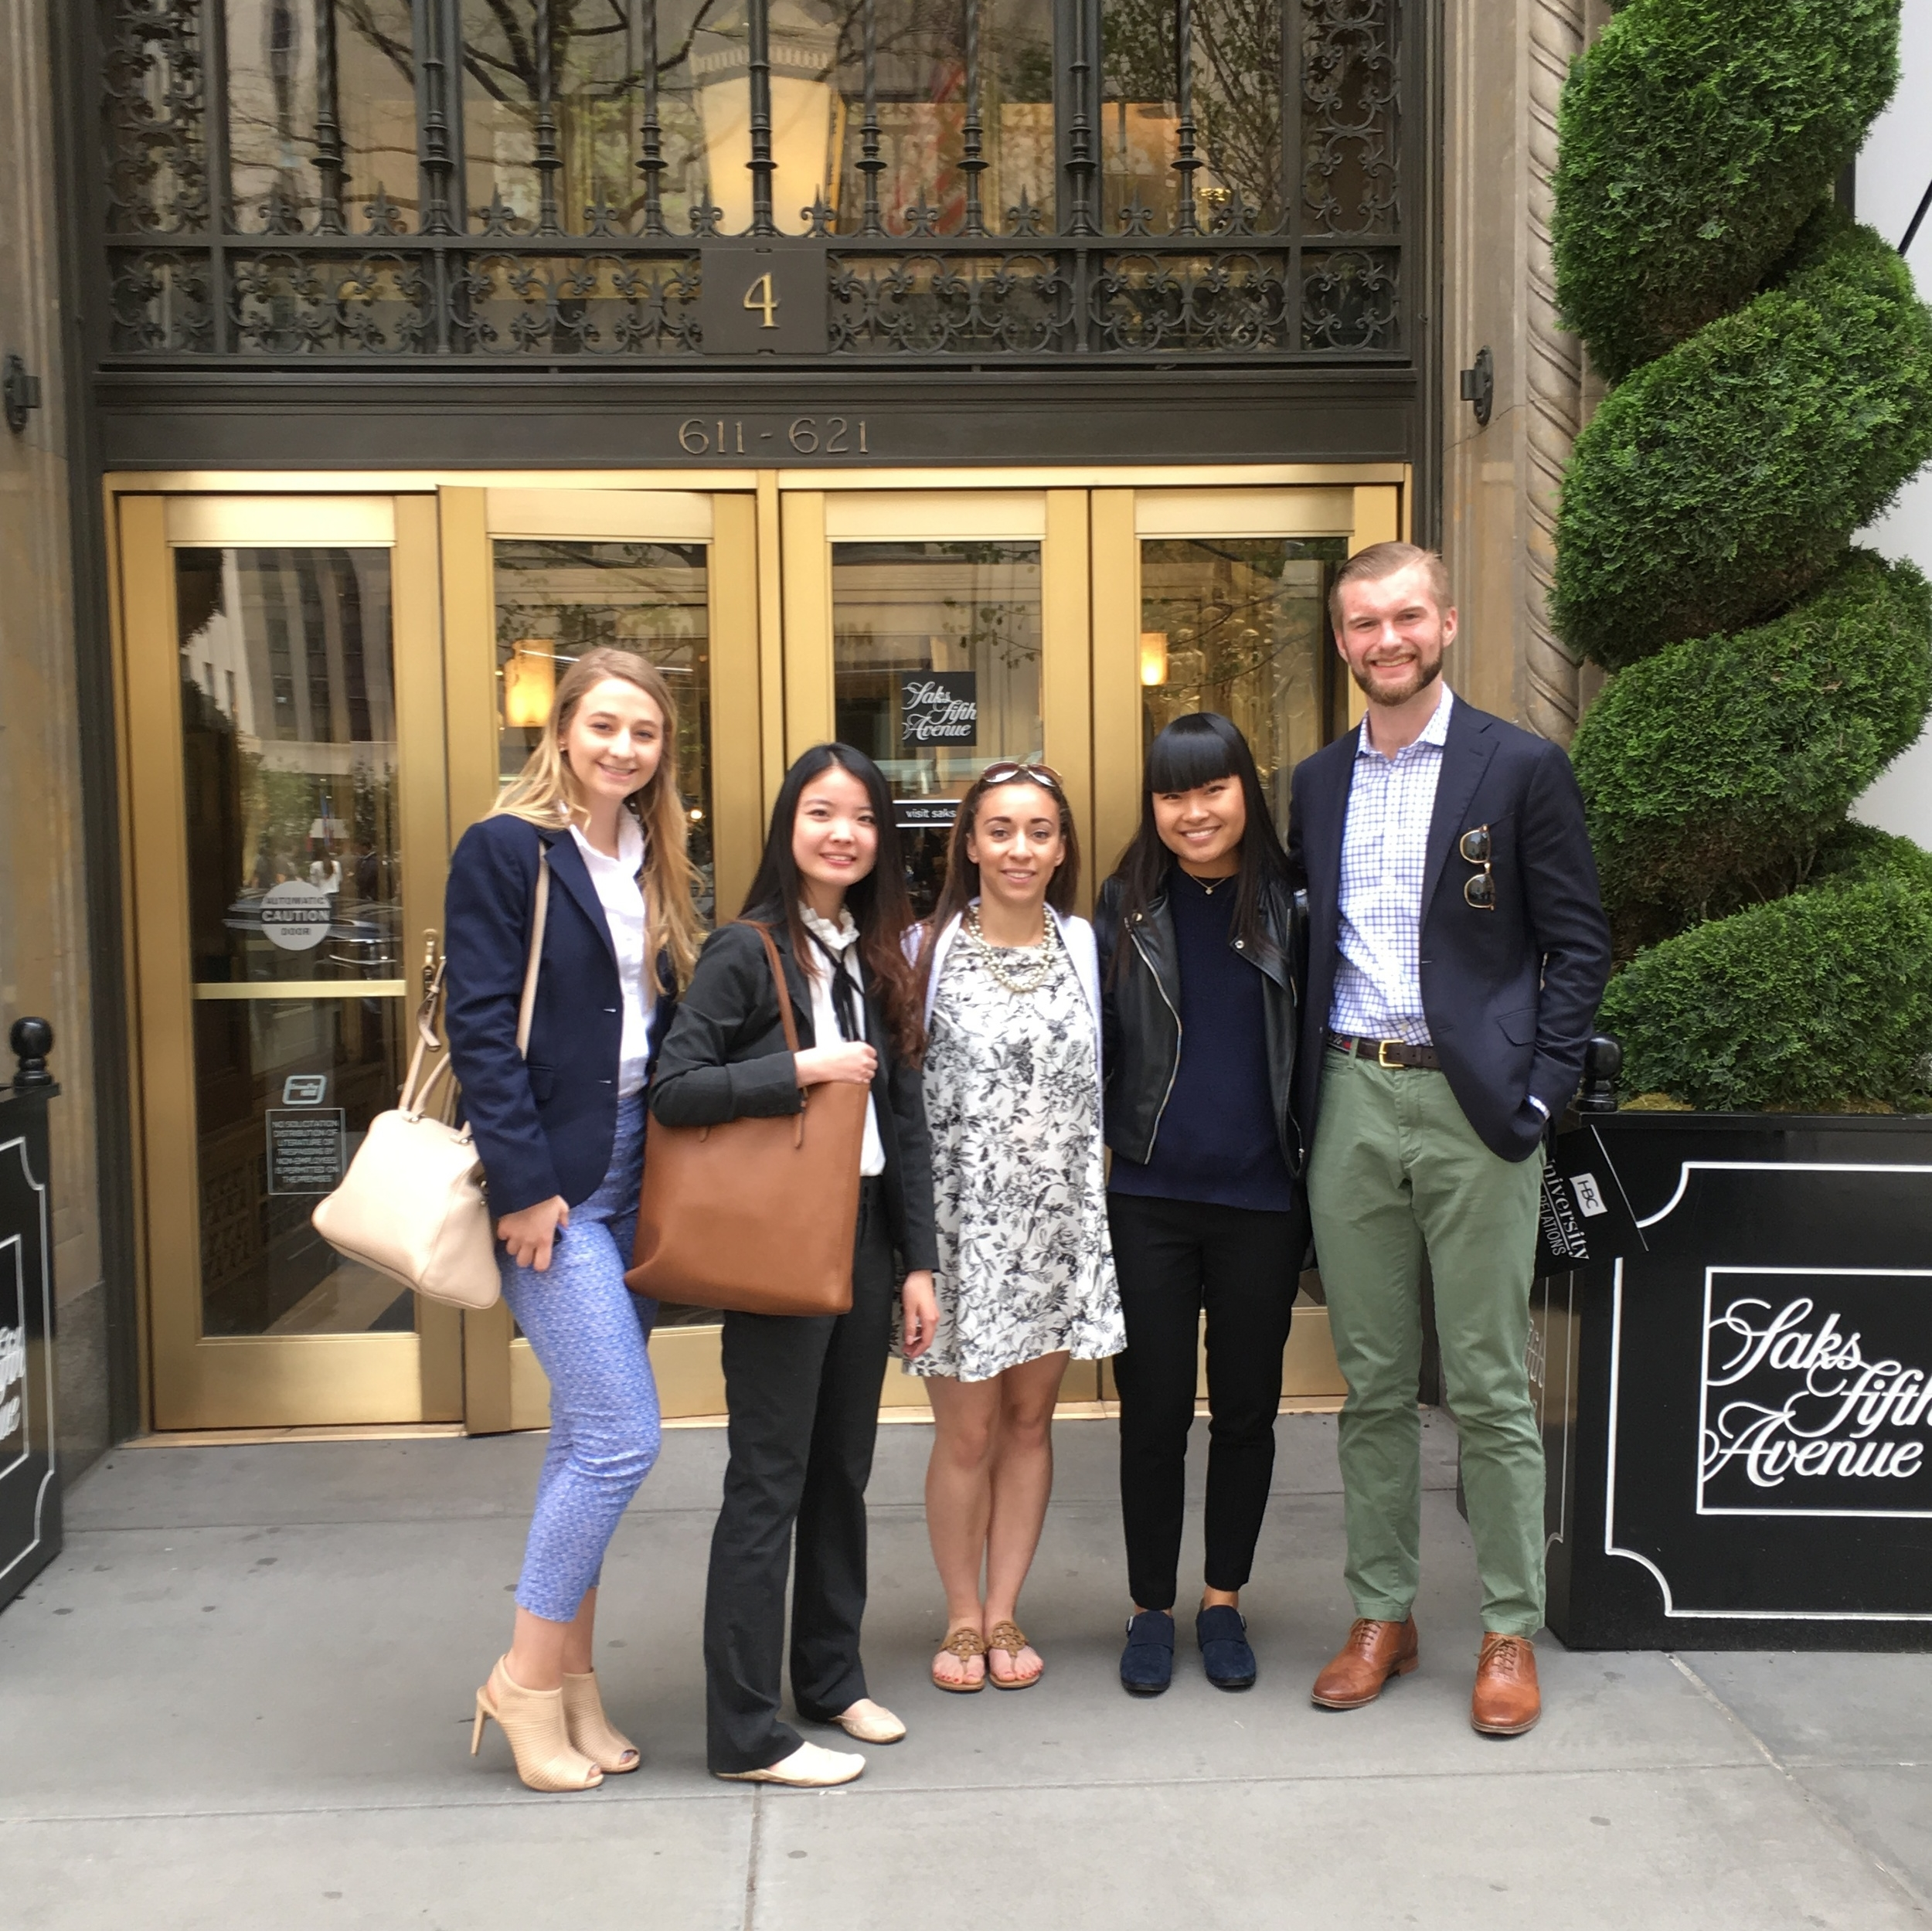 Part of the Saks immersion group (photo credit: two random French grandmothers who I brokenly asked  pour prendre une photo )